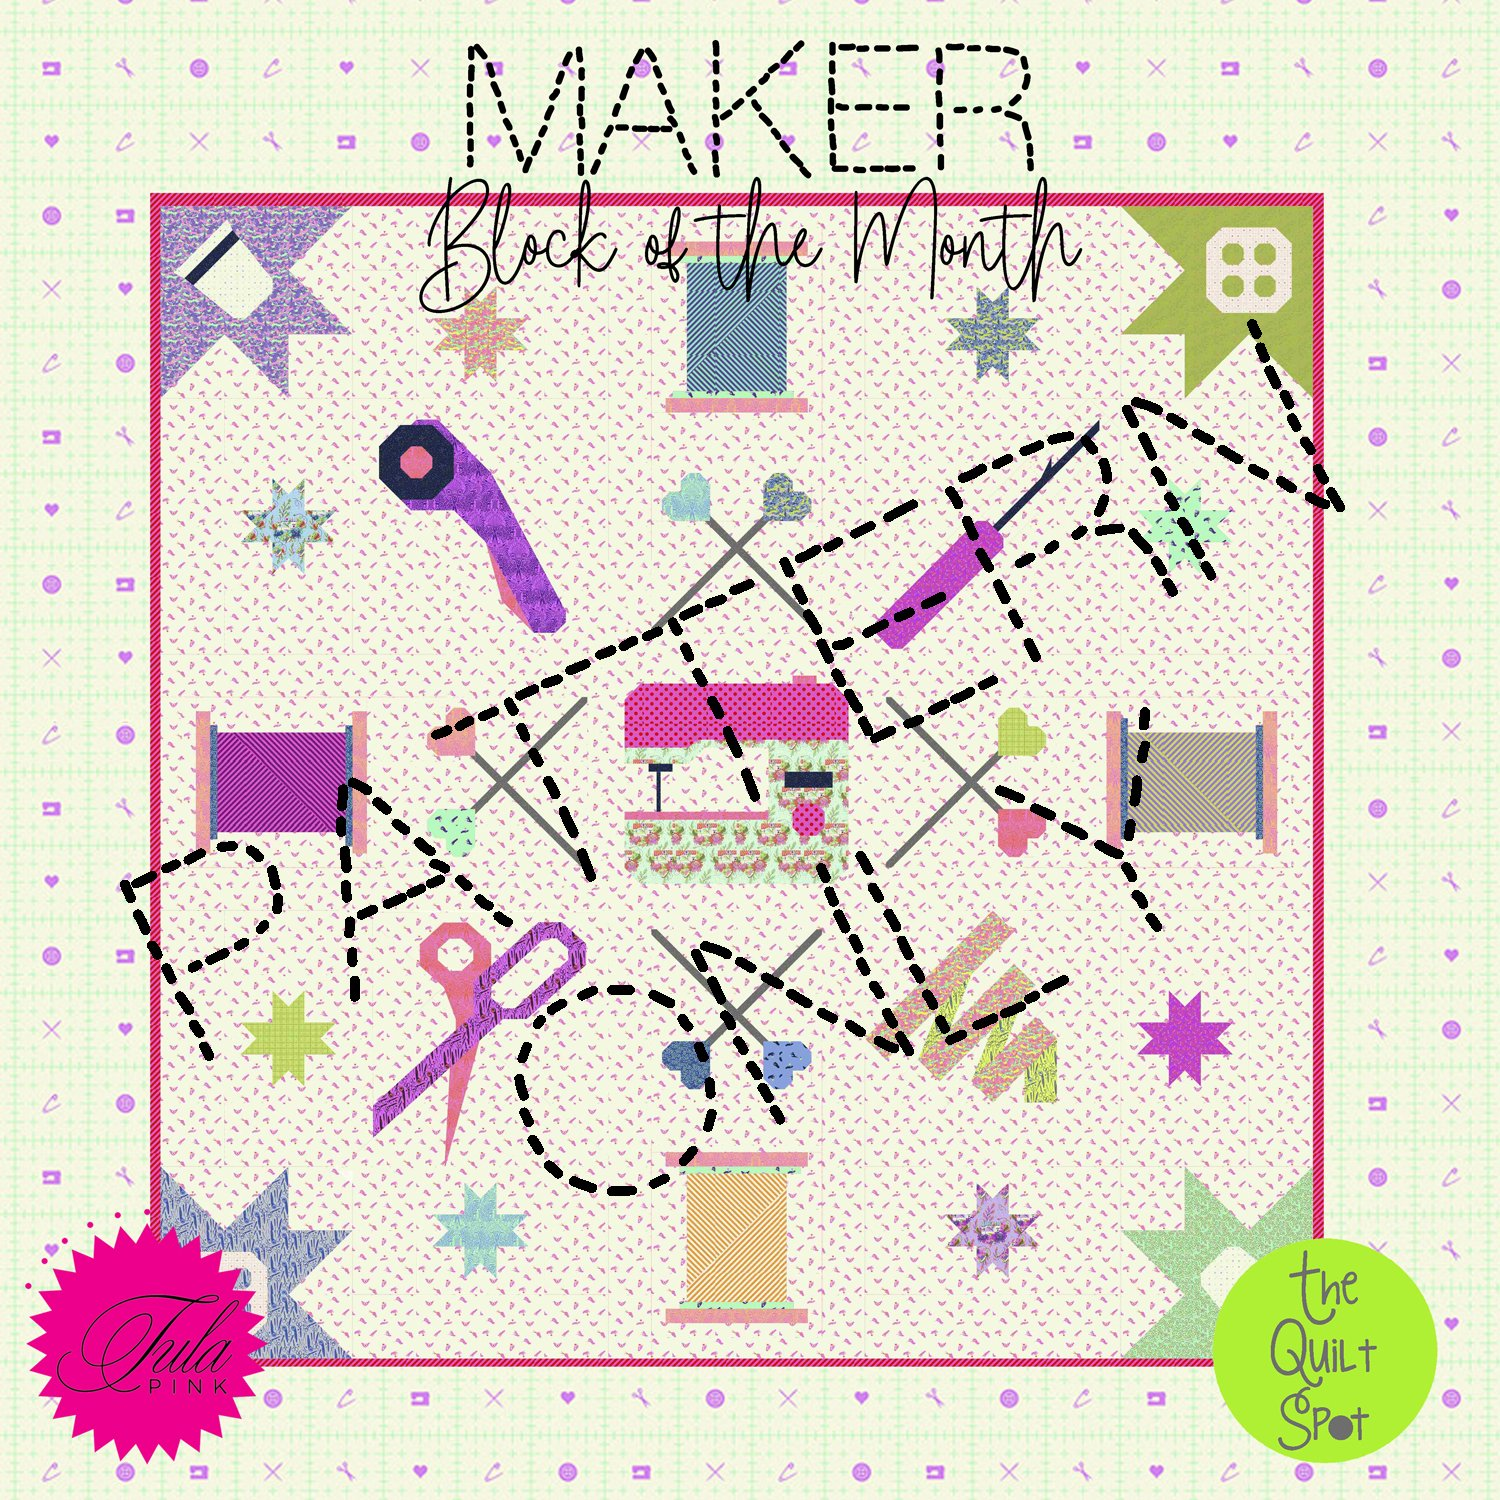 Maker Block of the Month - Pattern Only